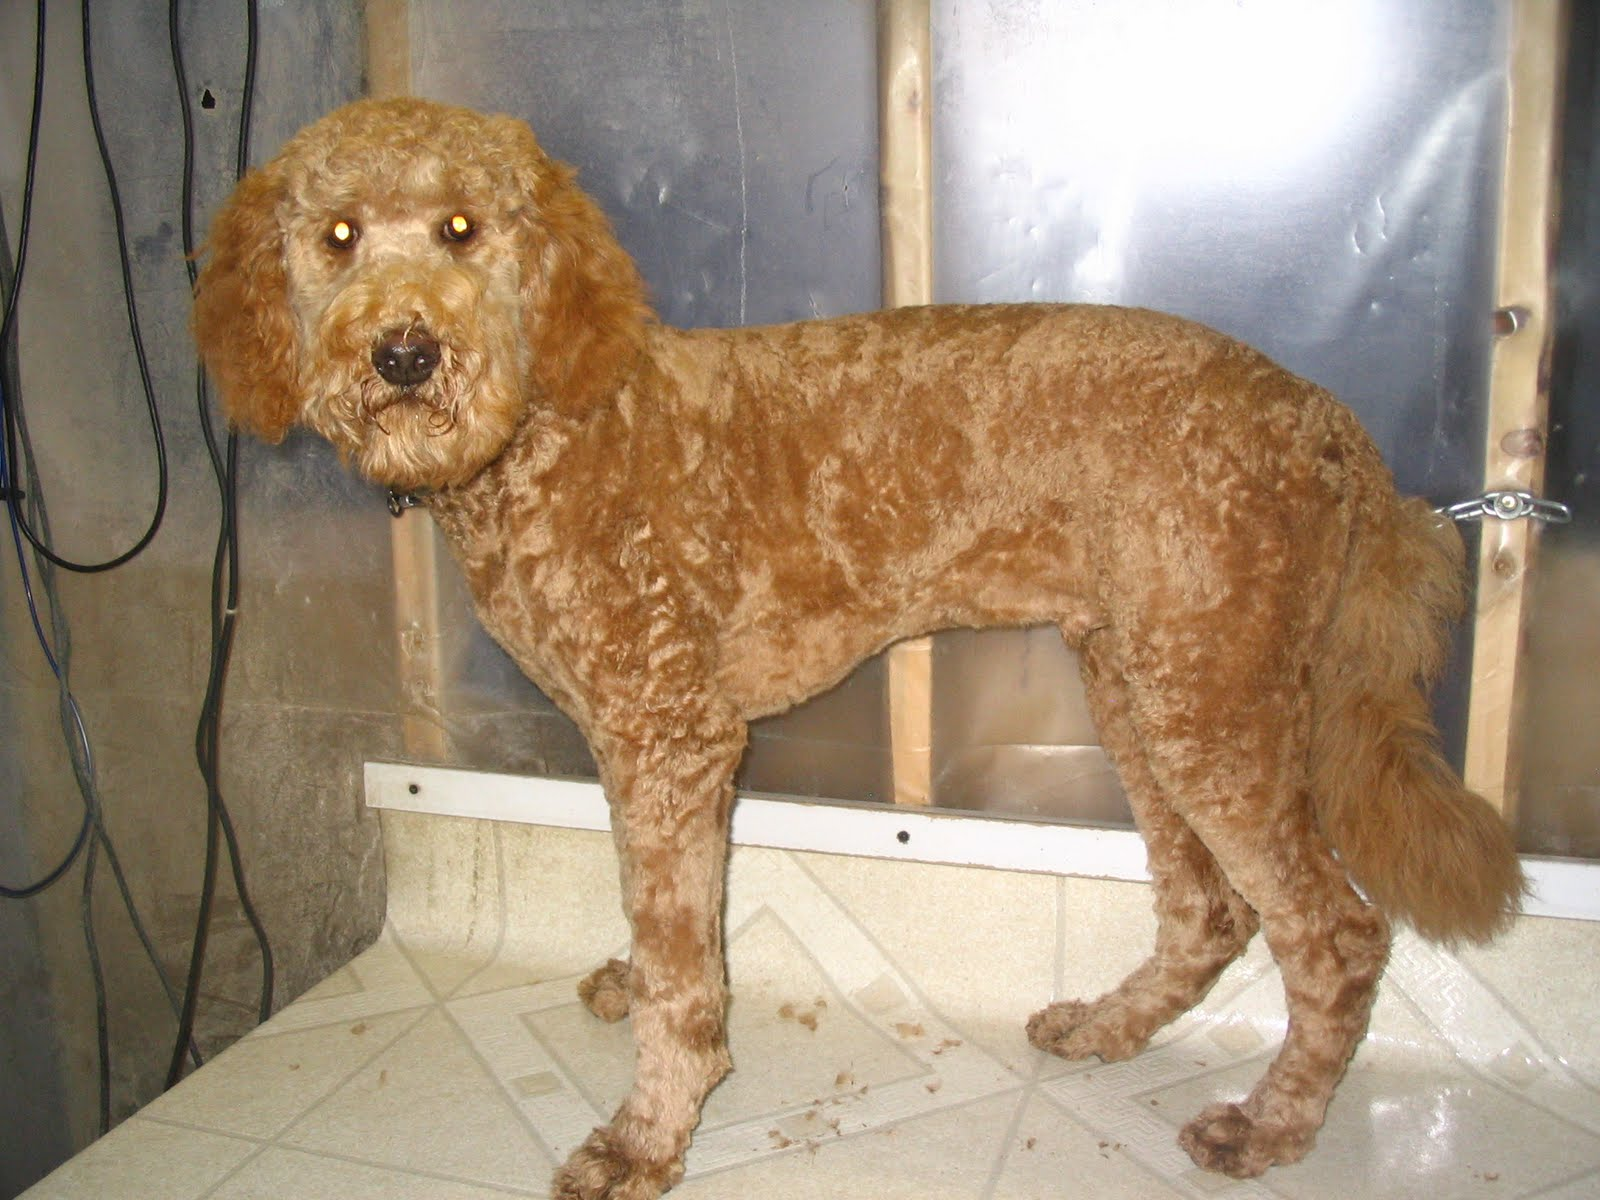 Labradoodle+grooming+photos